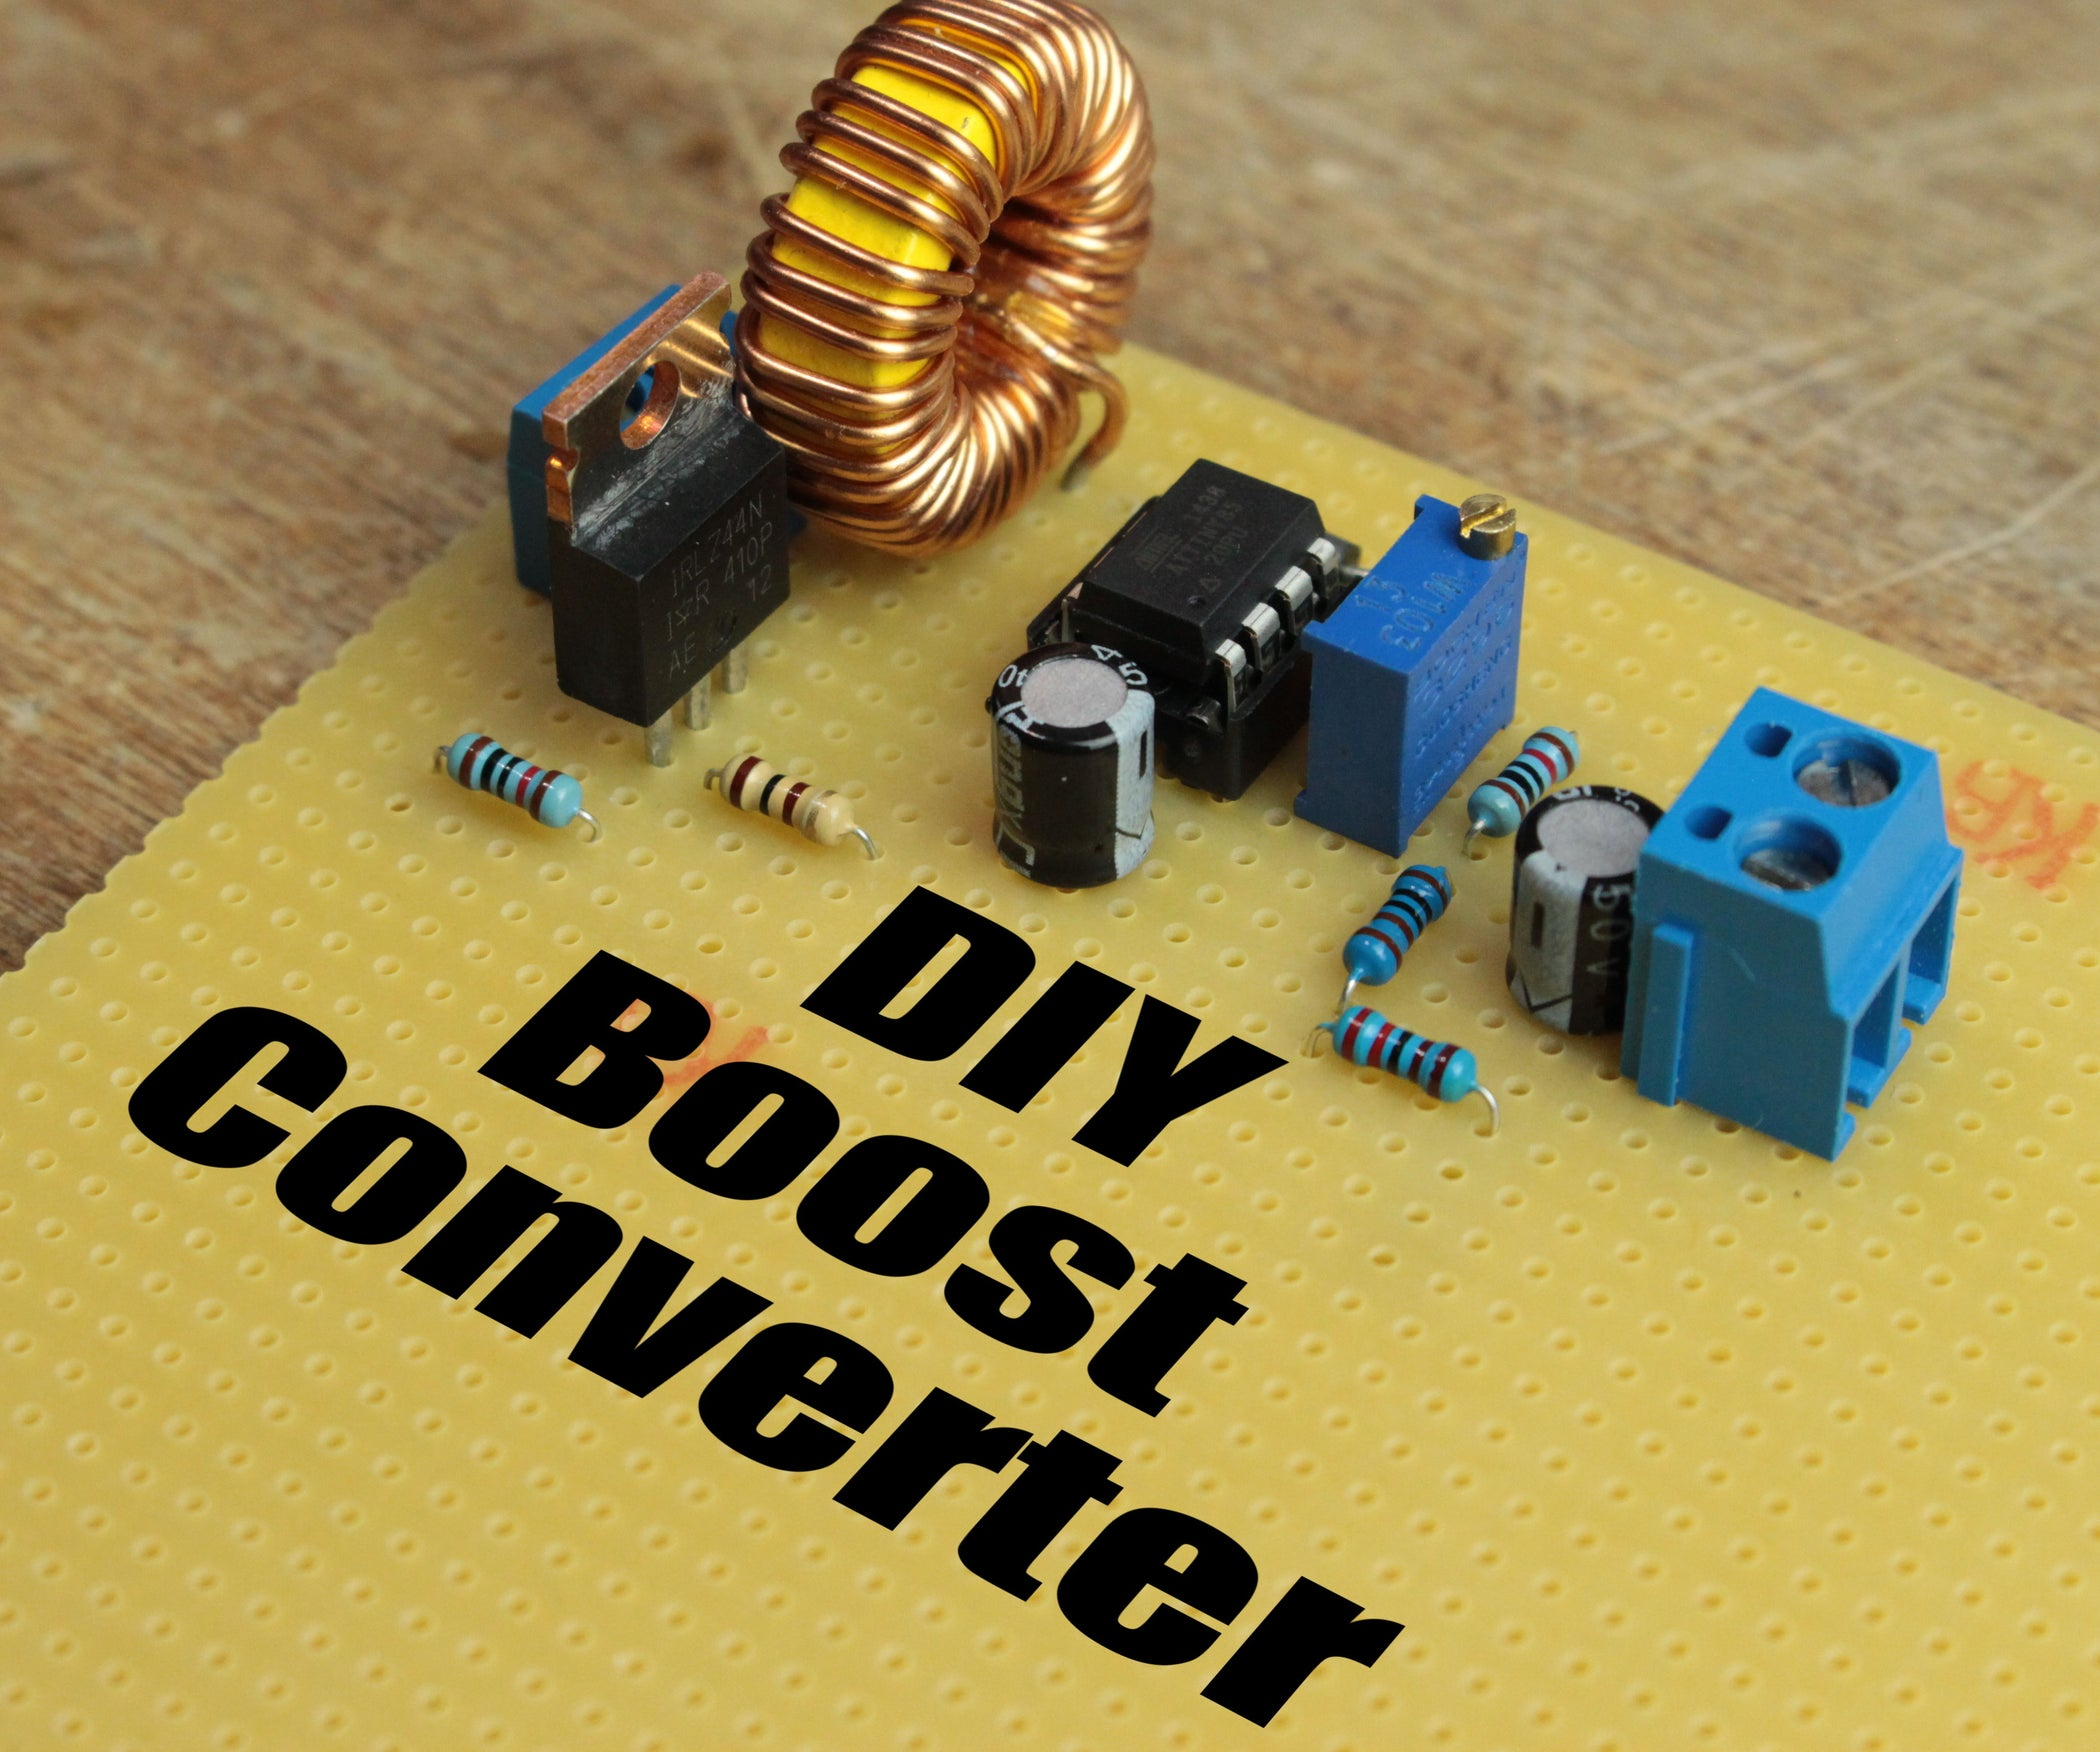 Diy Boost Converter How To Step Up Dc Voltage Efficiently 5 Set Of 8 Electronic Circuit Board Hard Drive Mounts Ebay Steps With Pictures